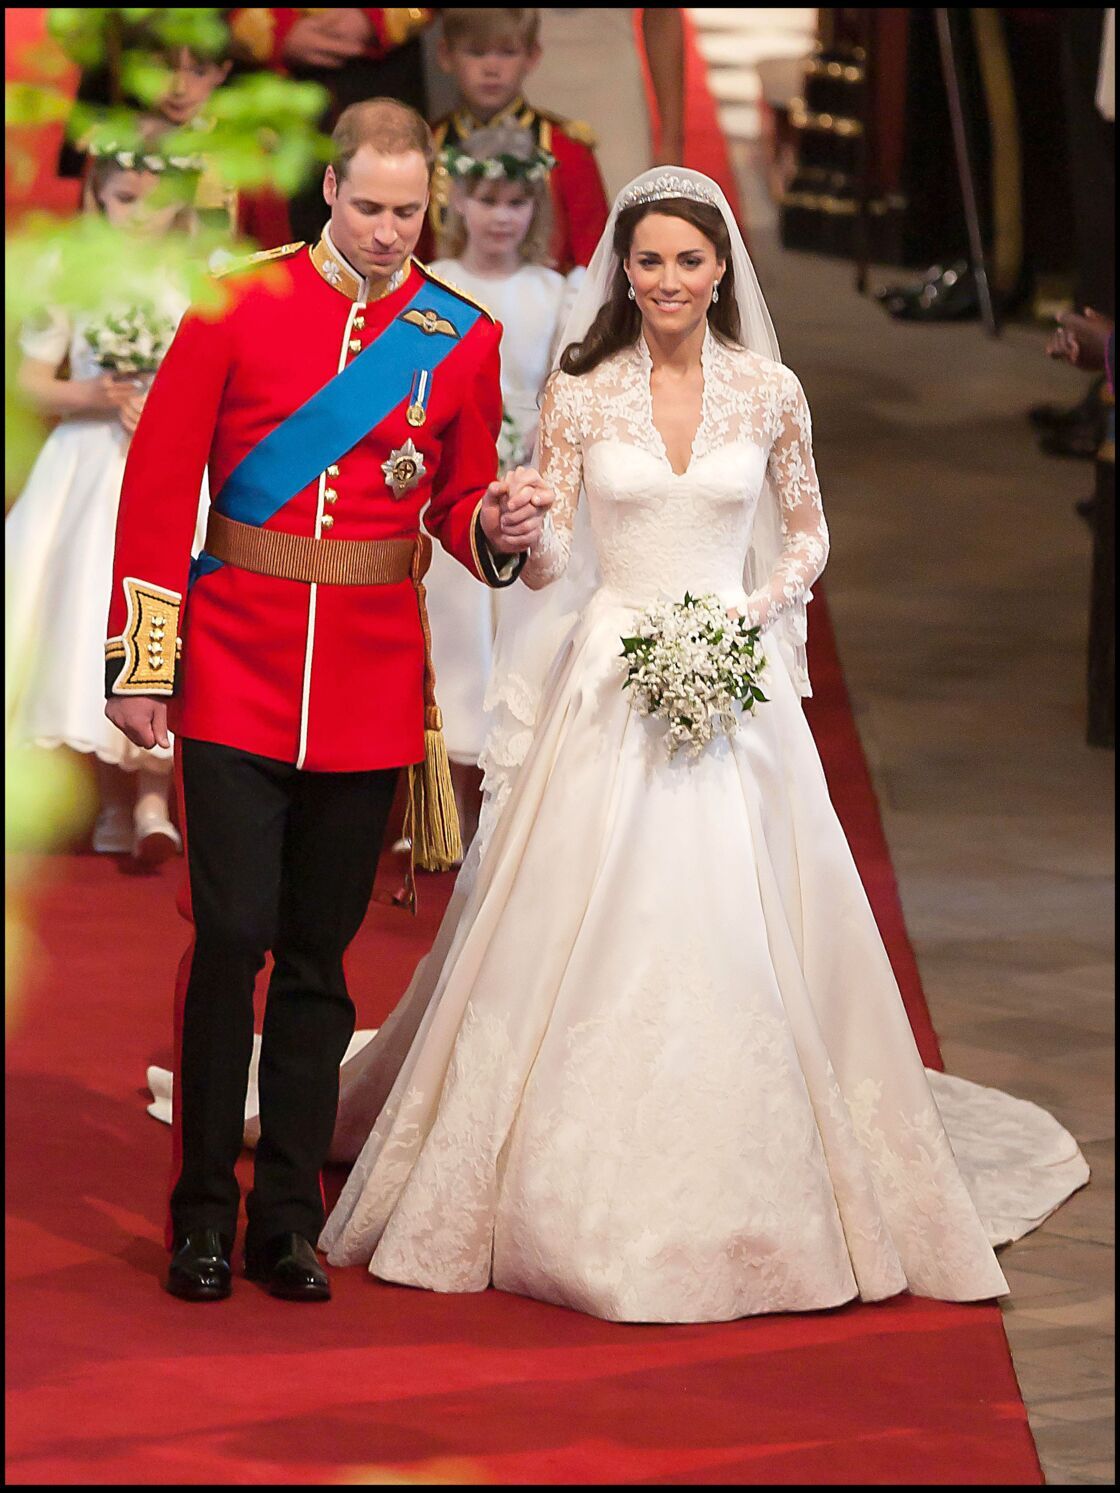 Le prince William et Kate Middleton, le jour de leur mariage, le 29 avril 2011.